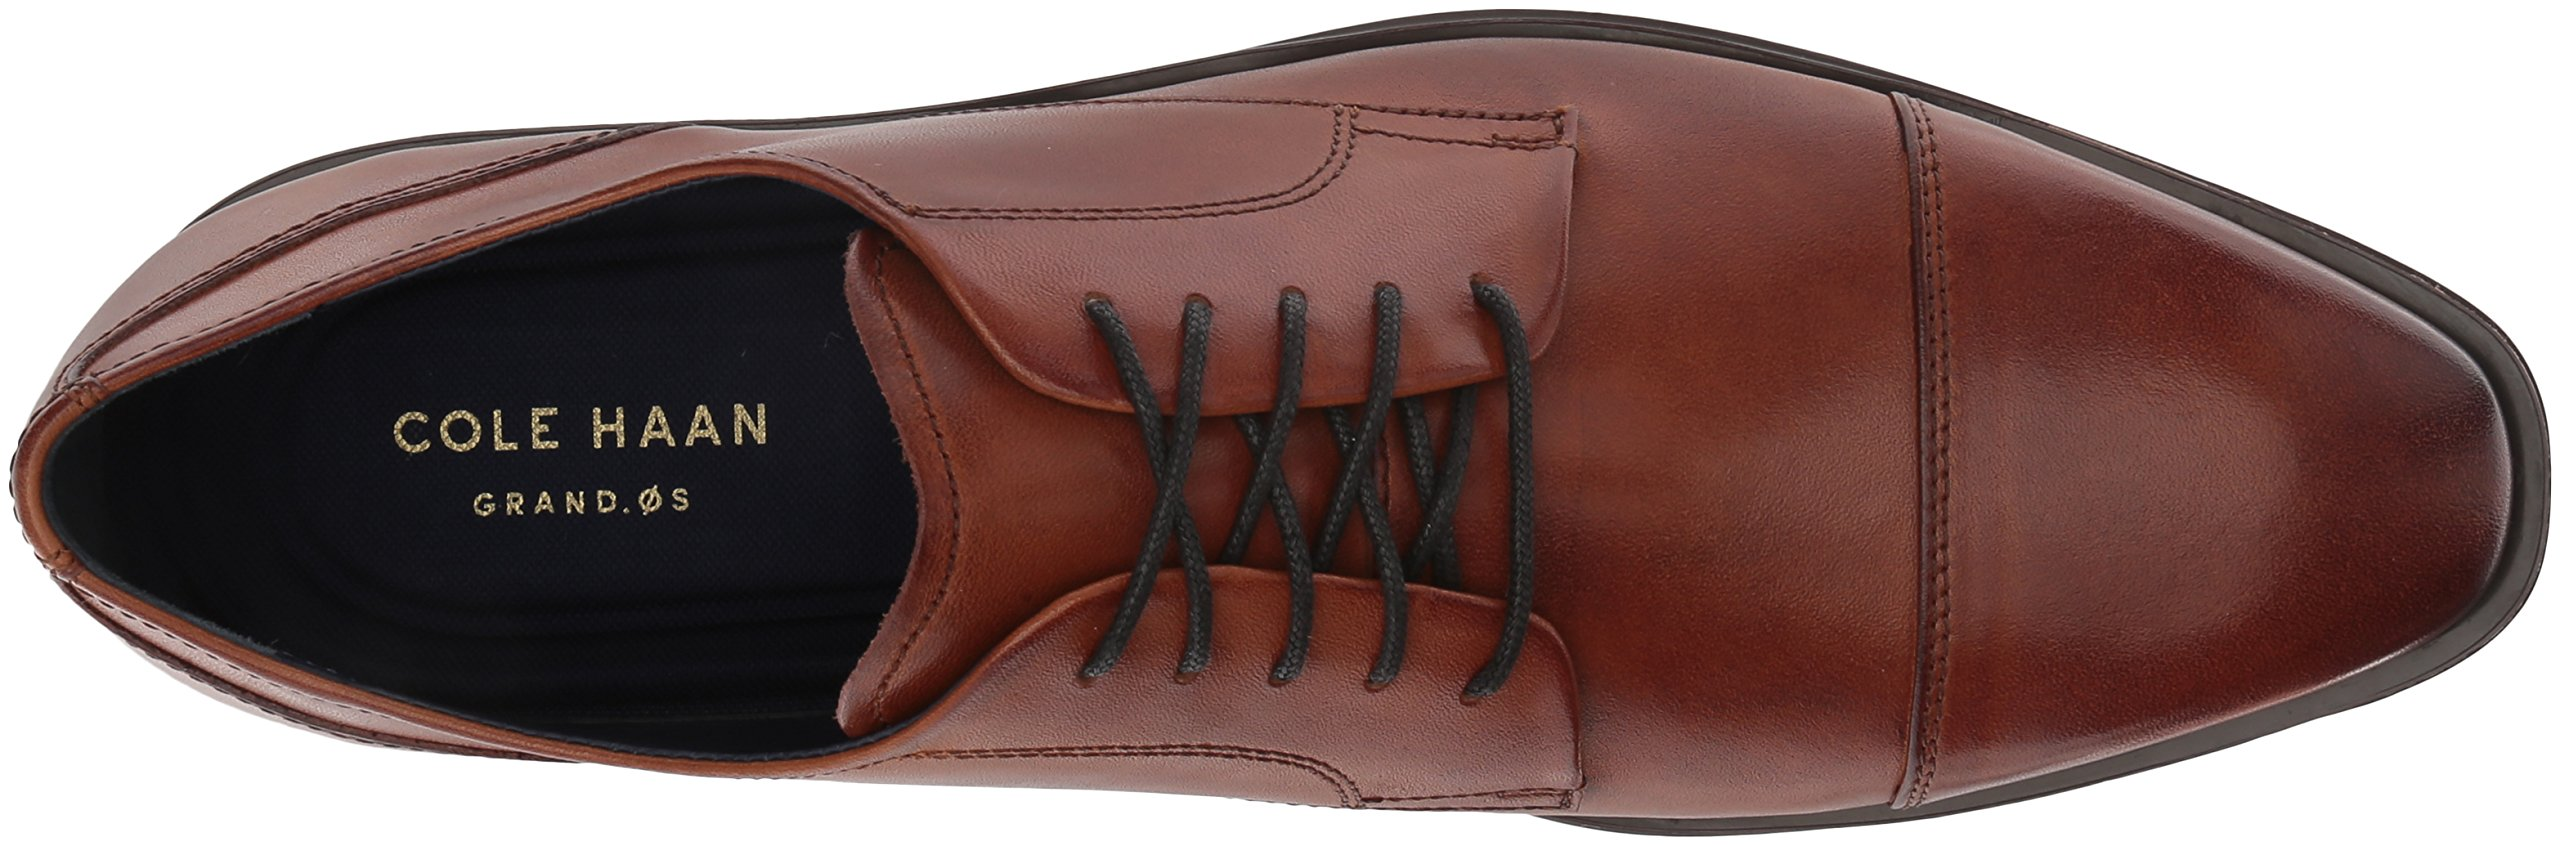 Cole Haan Men's Dawes Grand Cap Toe Oxford, British Tan, 11 Medium US by Cole Haan (Image #8)